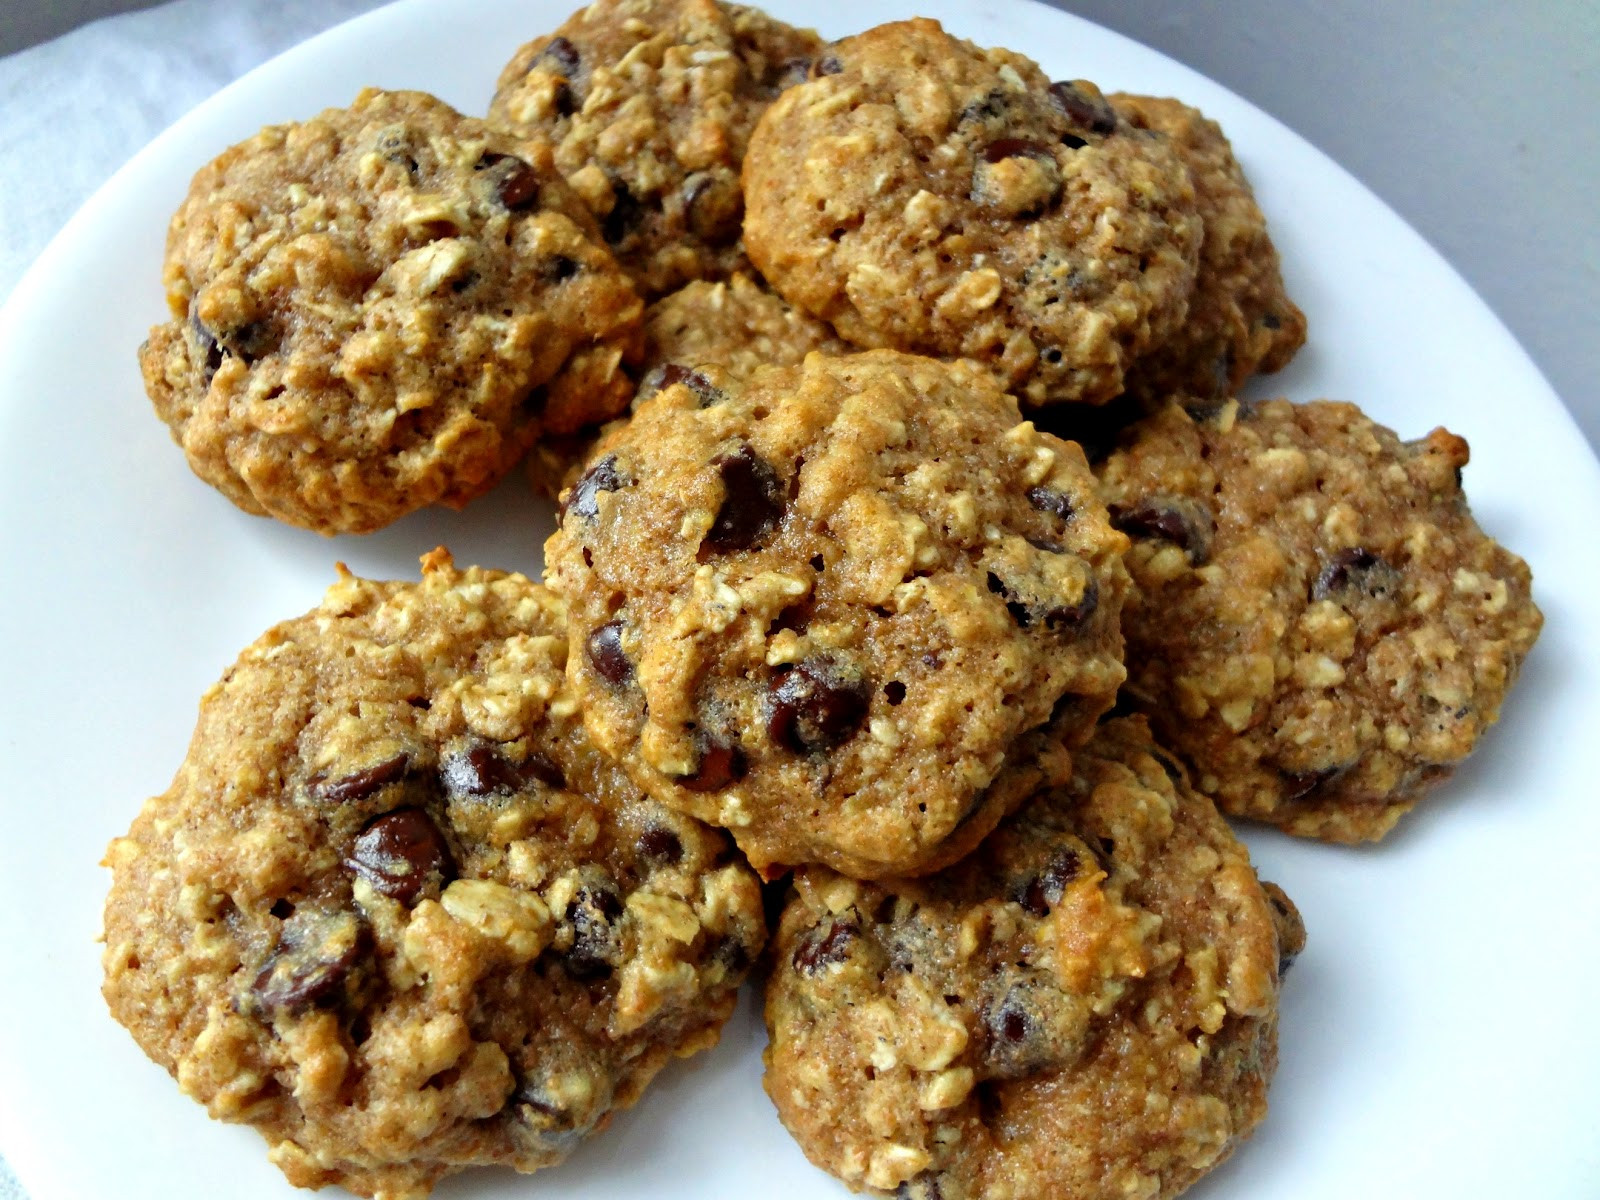 Healthy Homemade Oatmeal Cookies  The Cooking Actress Healthy Oatmeal Chocolate Chip Cookies